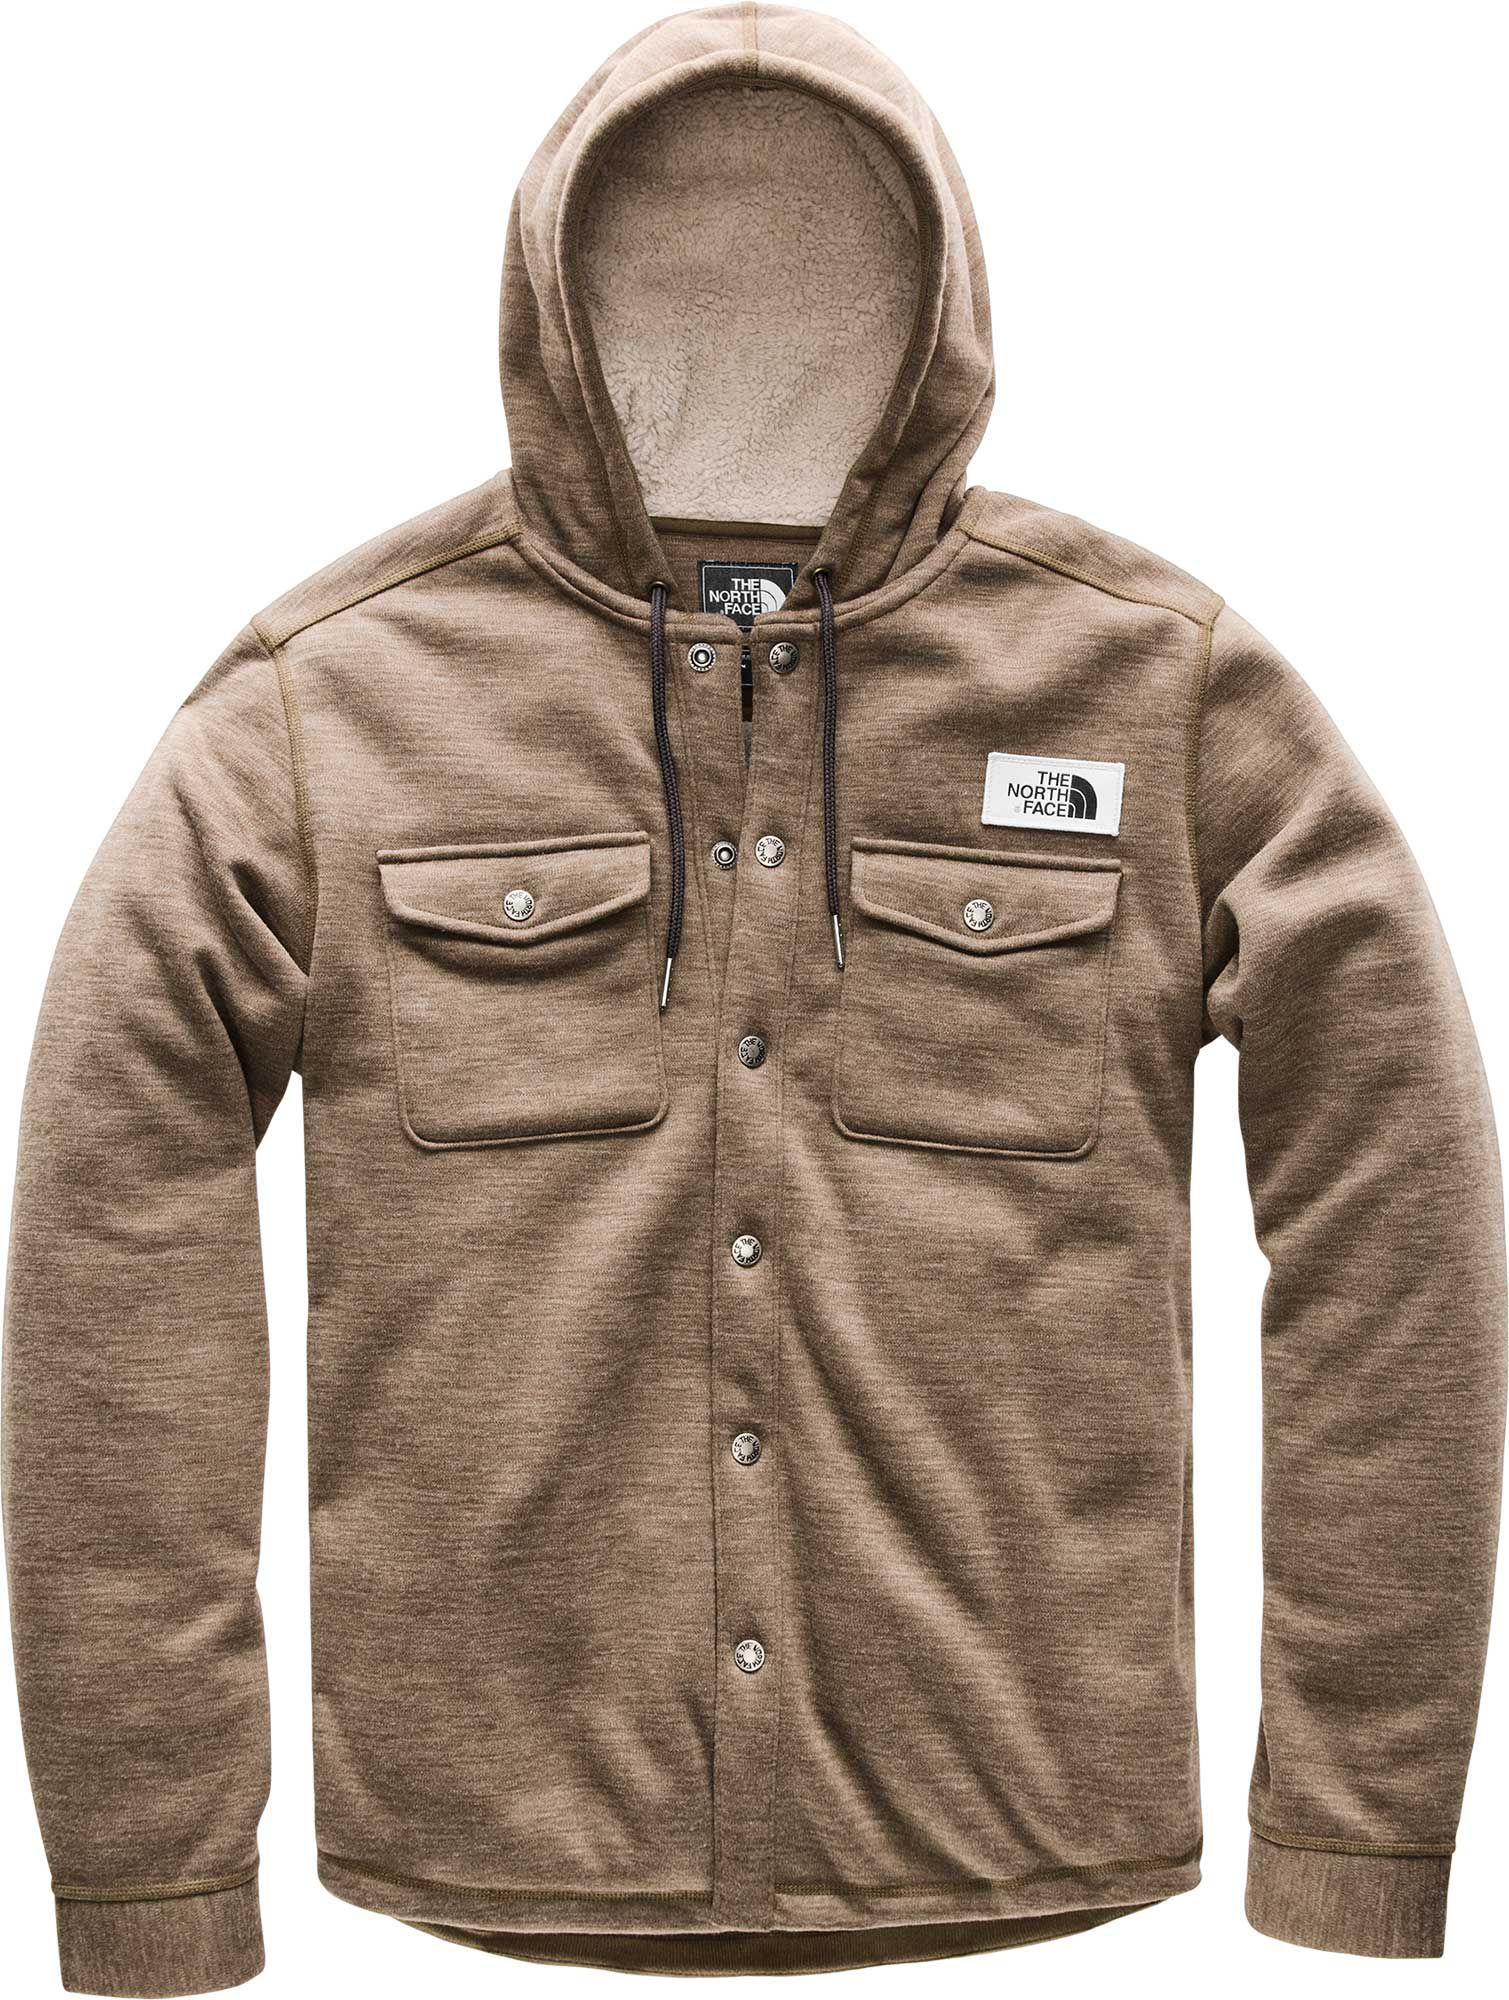 a007bcd0a The North Face Men's Sherpa Patrol Snap Up Fleece in 2019 | STYLE ...